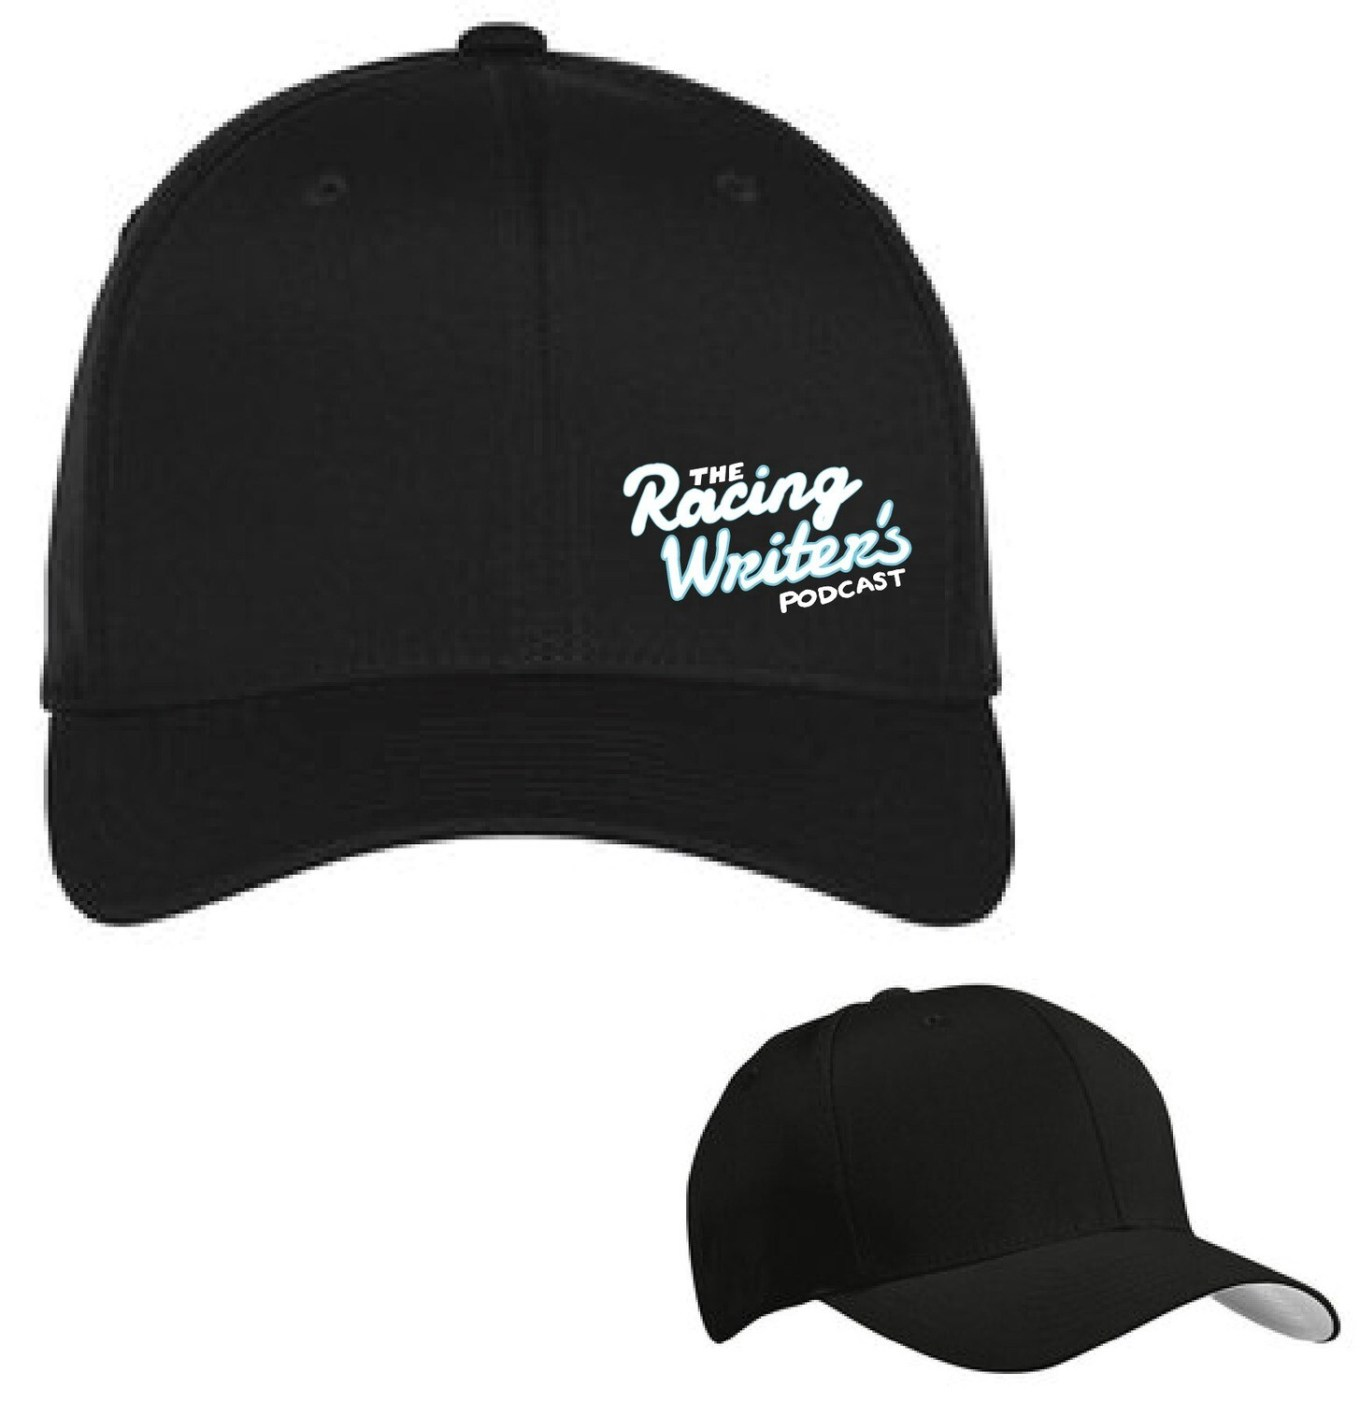 Racing Writer's Podcast Fitted Hat